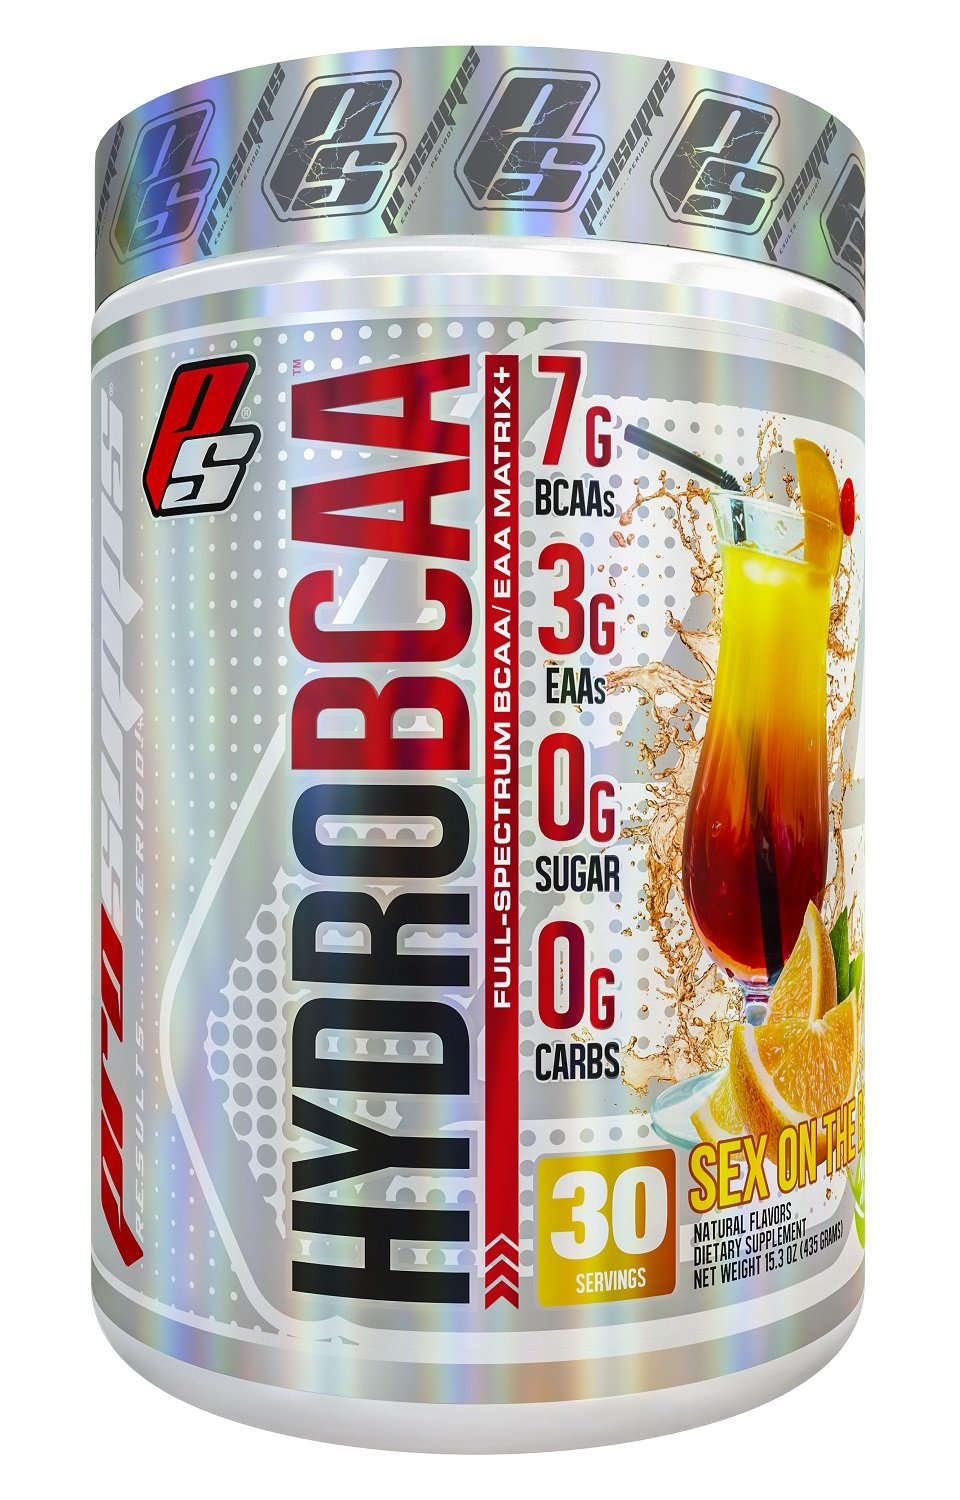 HydroBCAA BCAA/EAA Full Spectrum Matrix, 7g BCAAs, 3g EAAs, 0g Sugar, 0g Ccarbs, 30 servings, 15.3 oz. (Sex On The Beach Flavor)